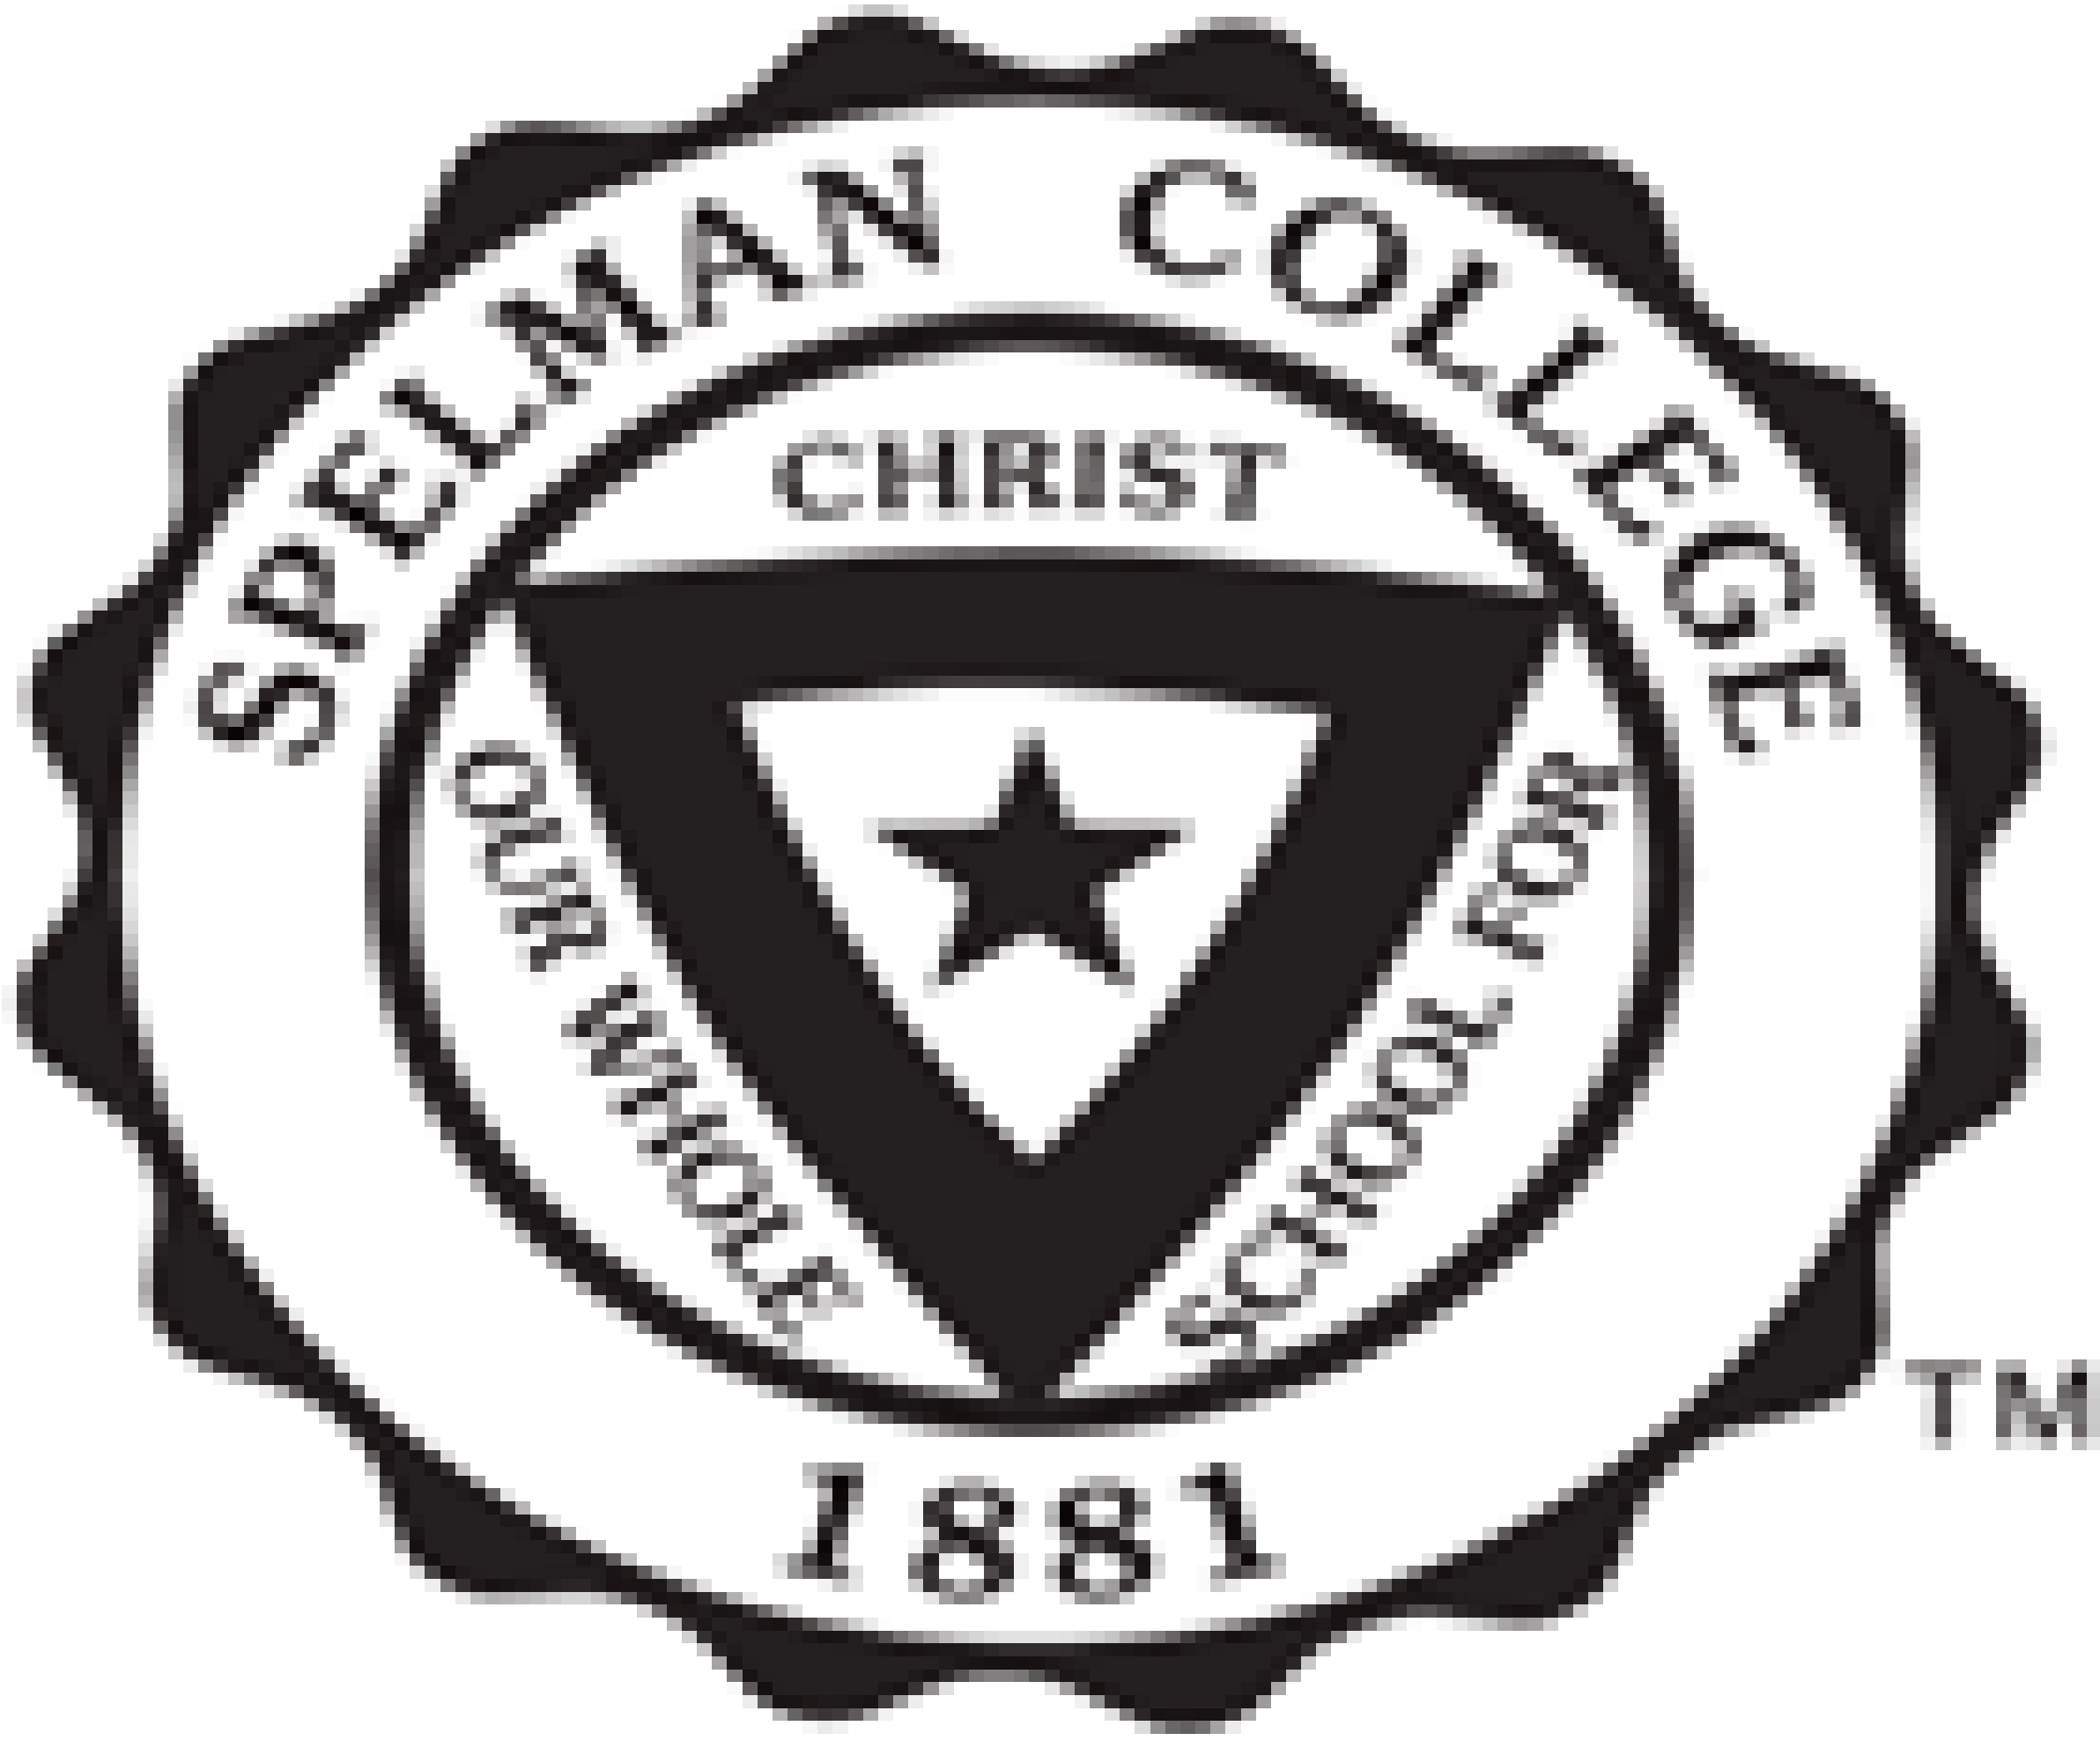 spelman college essay questions A historically black women's institution, spelman college has built a strong   get a personalized plan for a competitive application from an admissions expert.